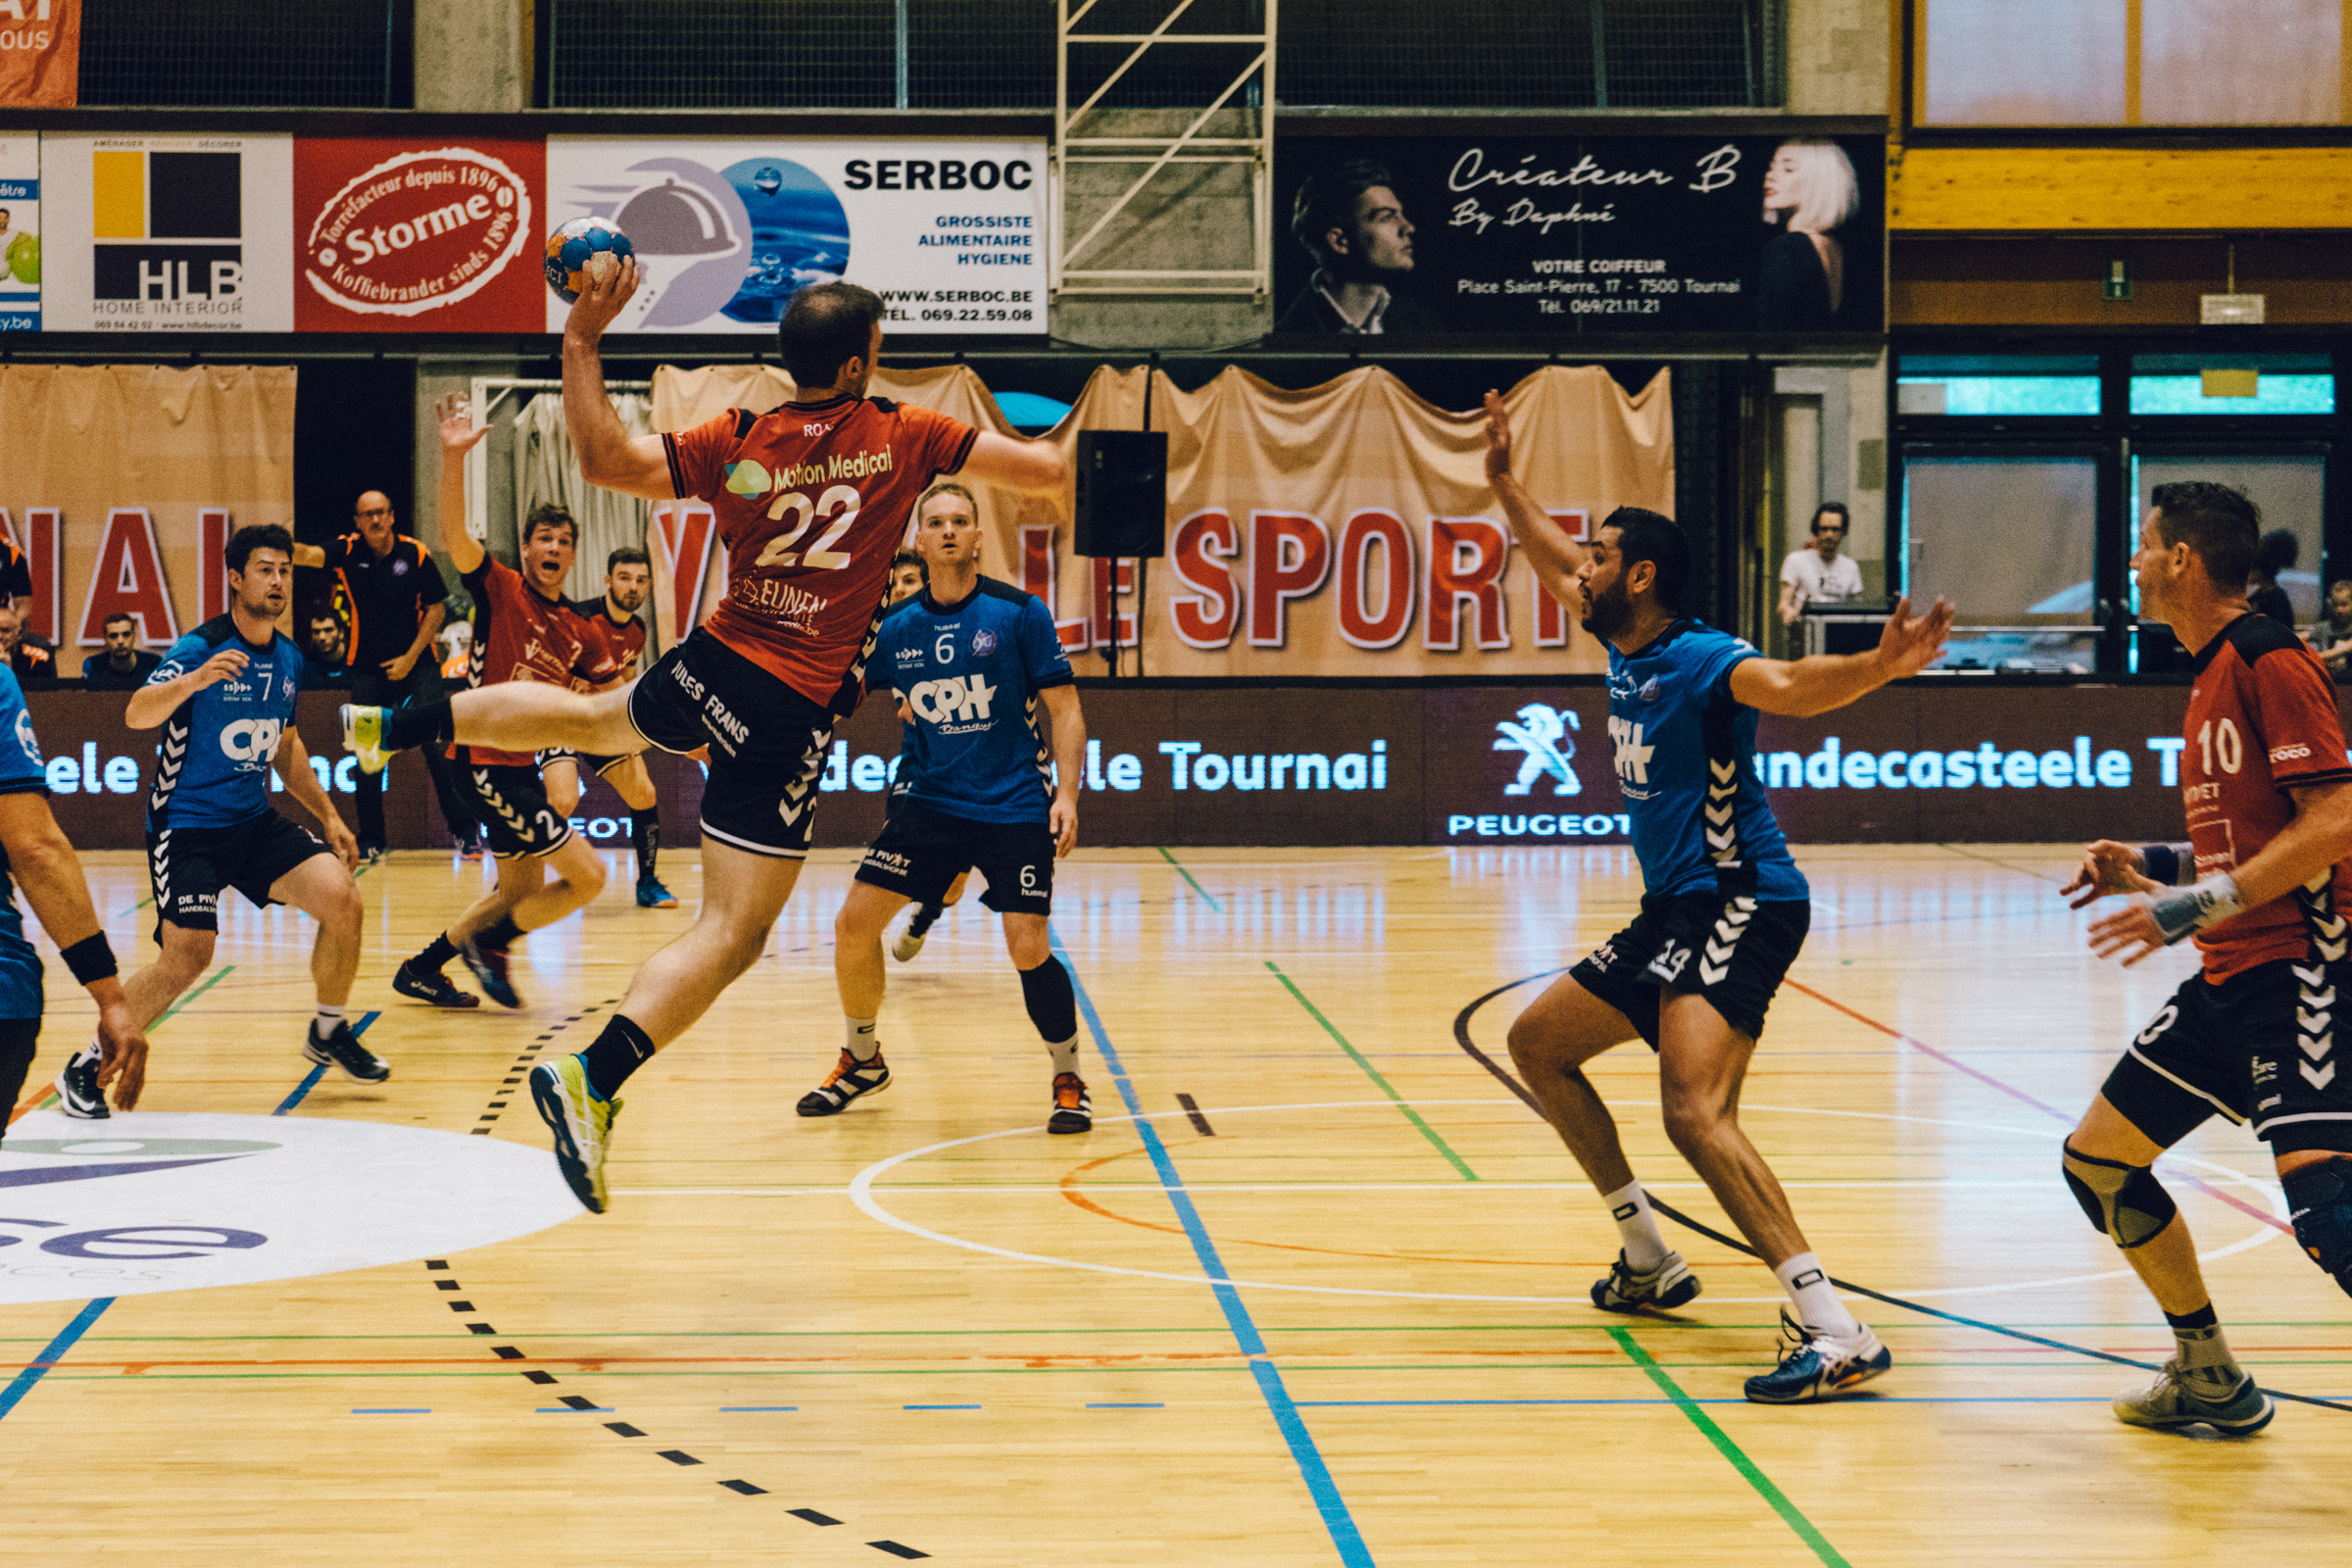 Match de l'Estudiantes Handball Club de Tournai